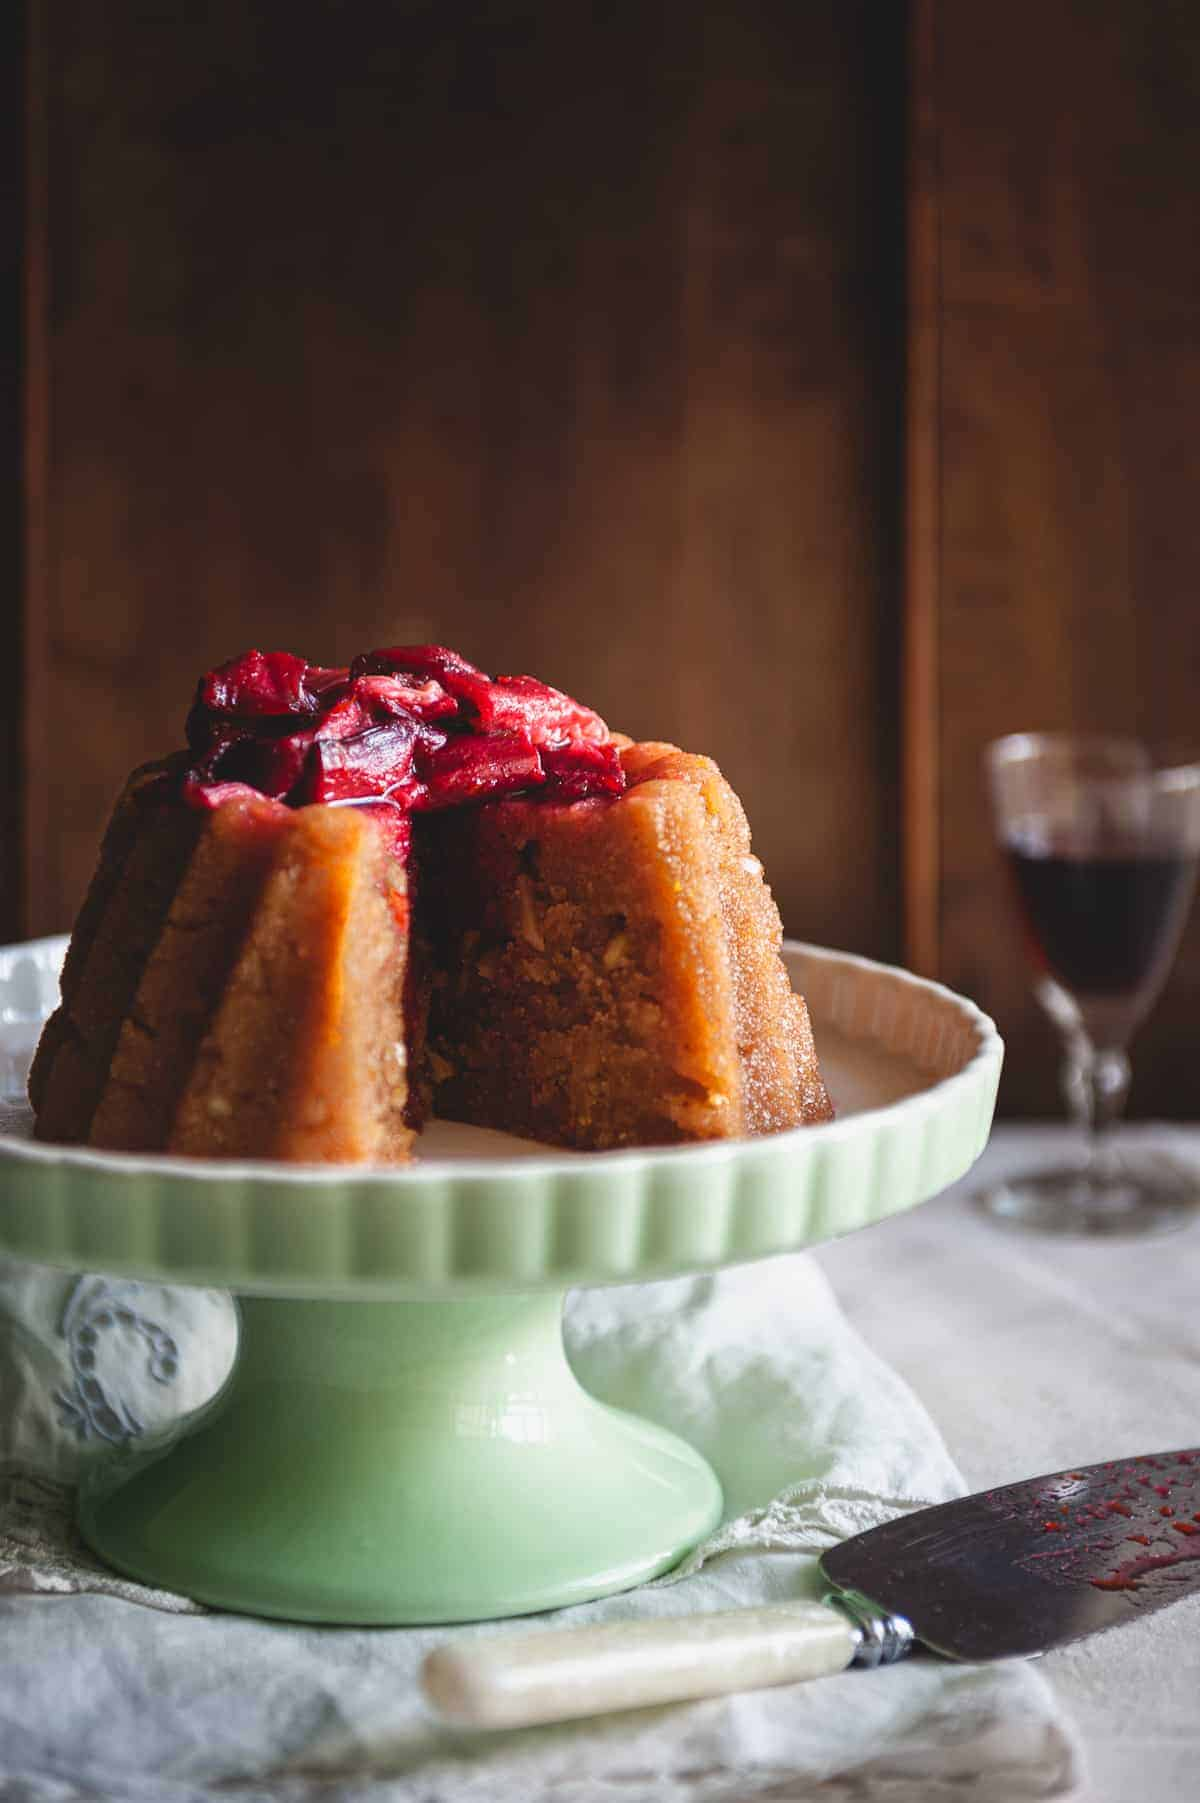 a Greek dessert known as halva on a cake stand served with a rhubarb compote